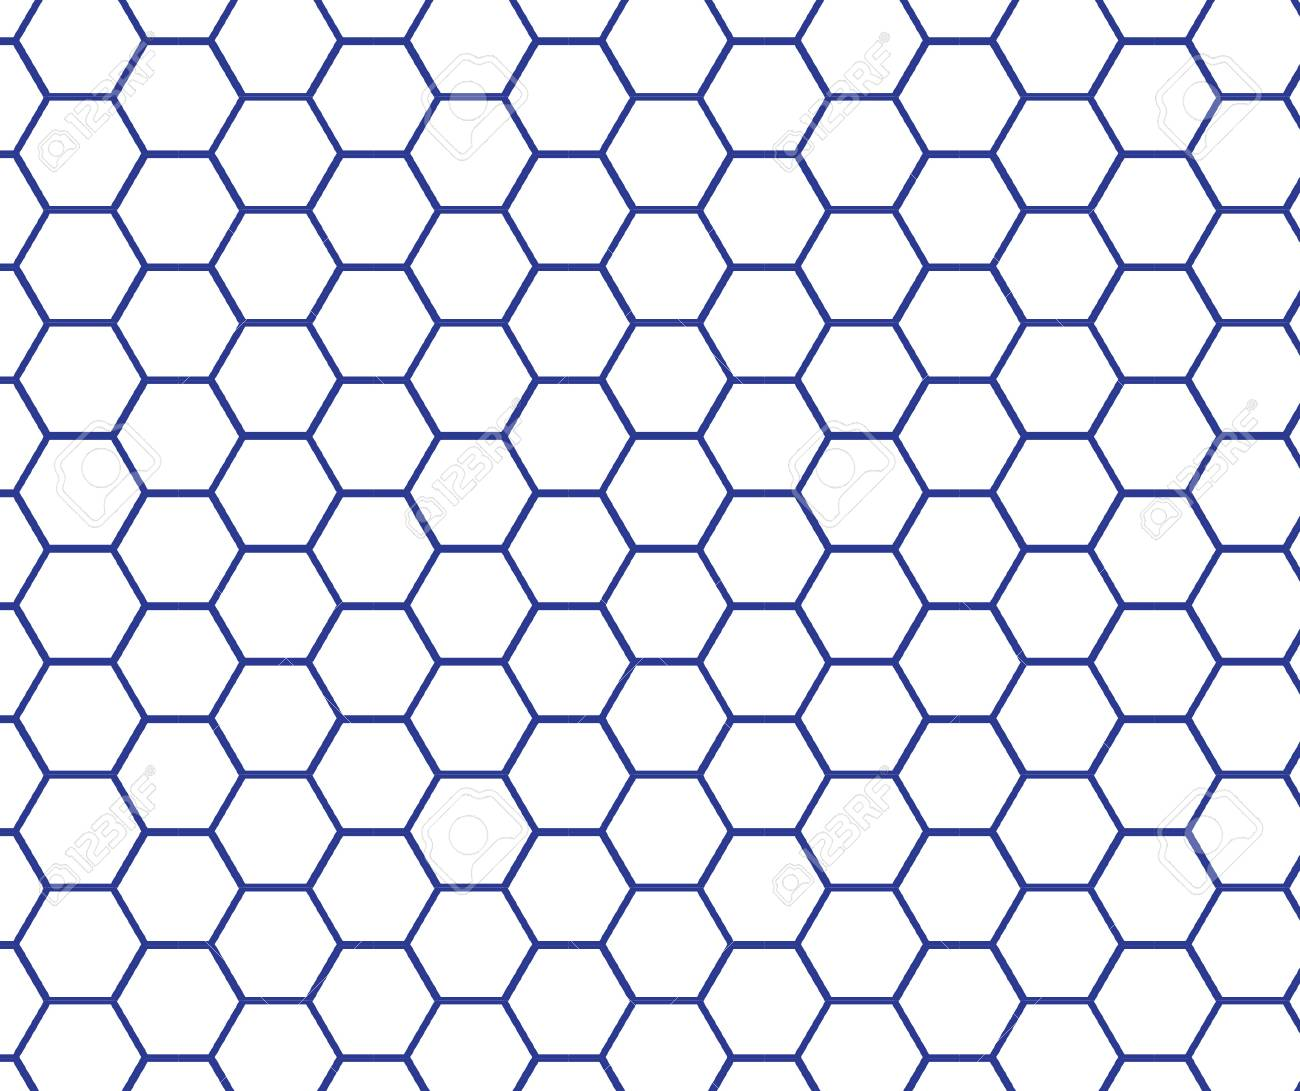 Hexagon Honeycomb Pattern Wiring Diagrams